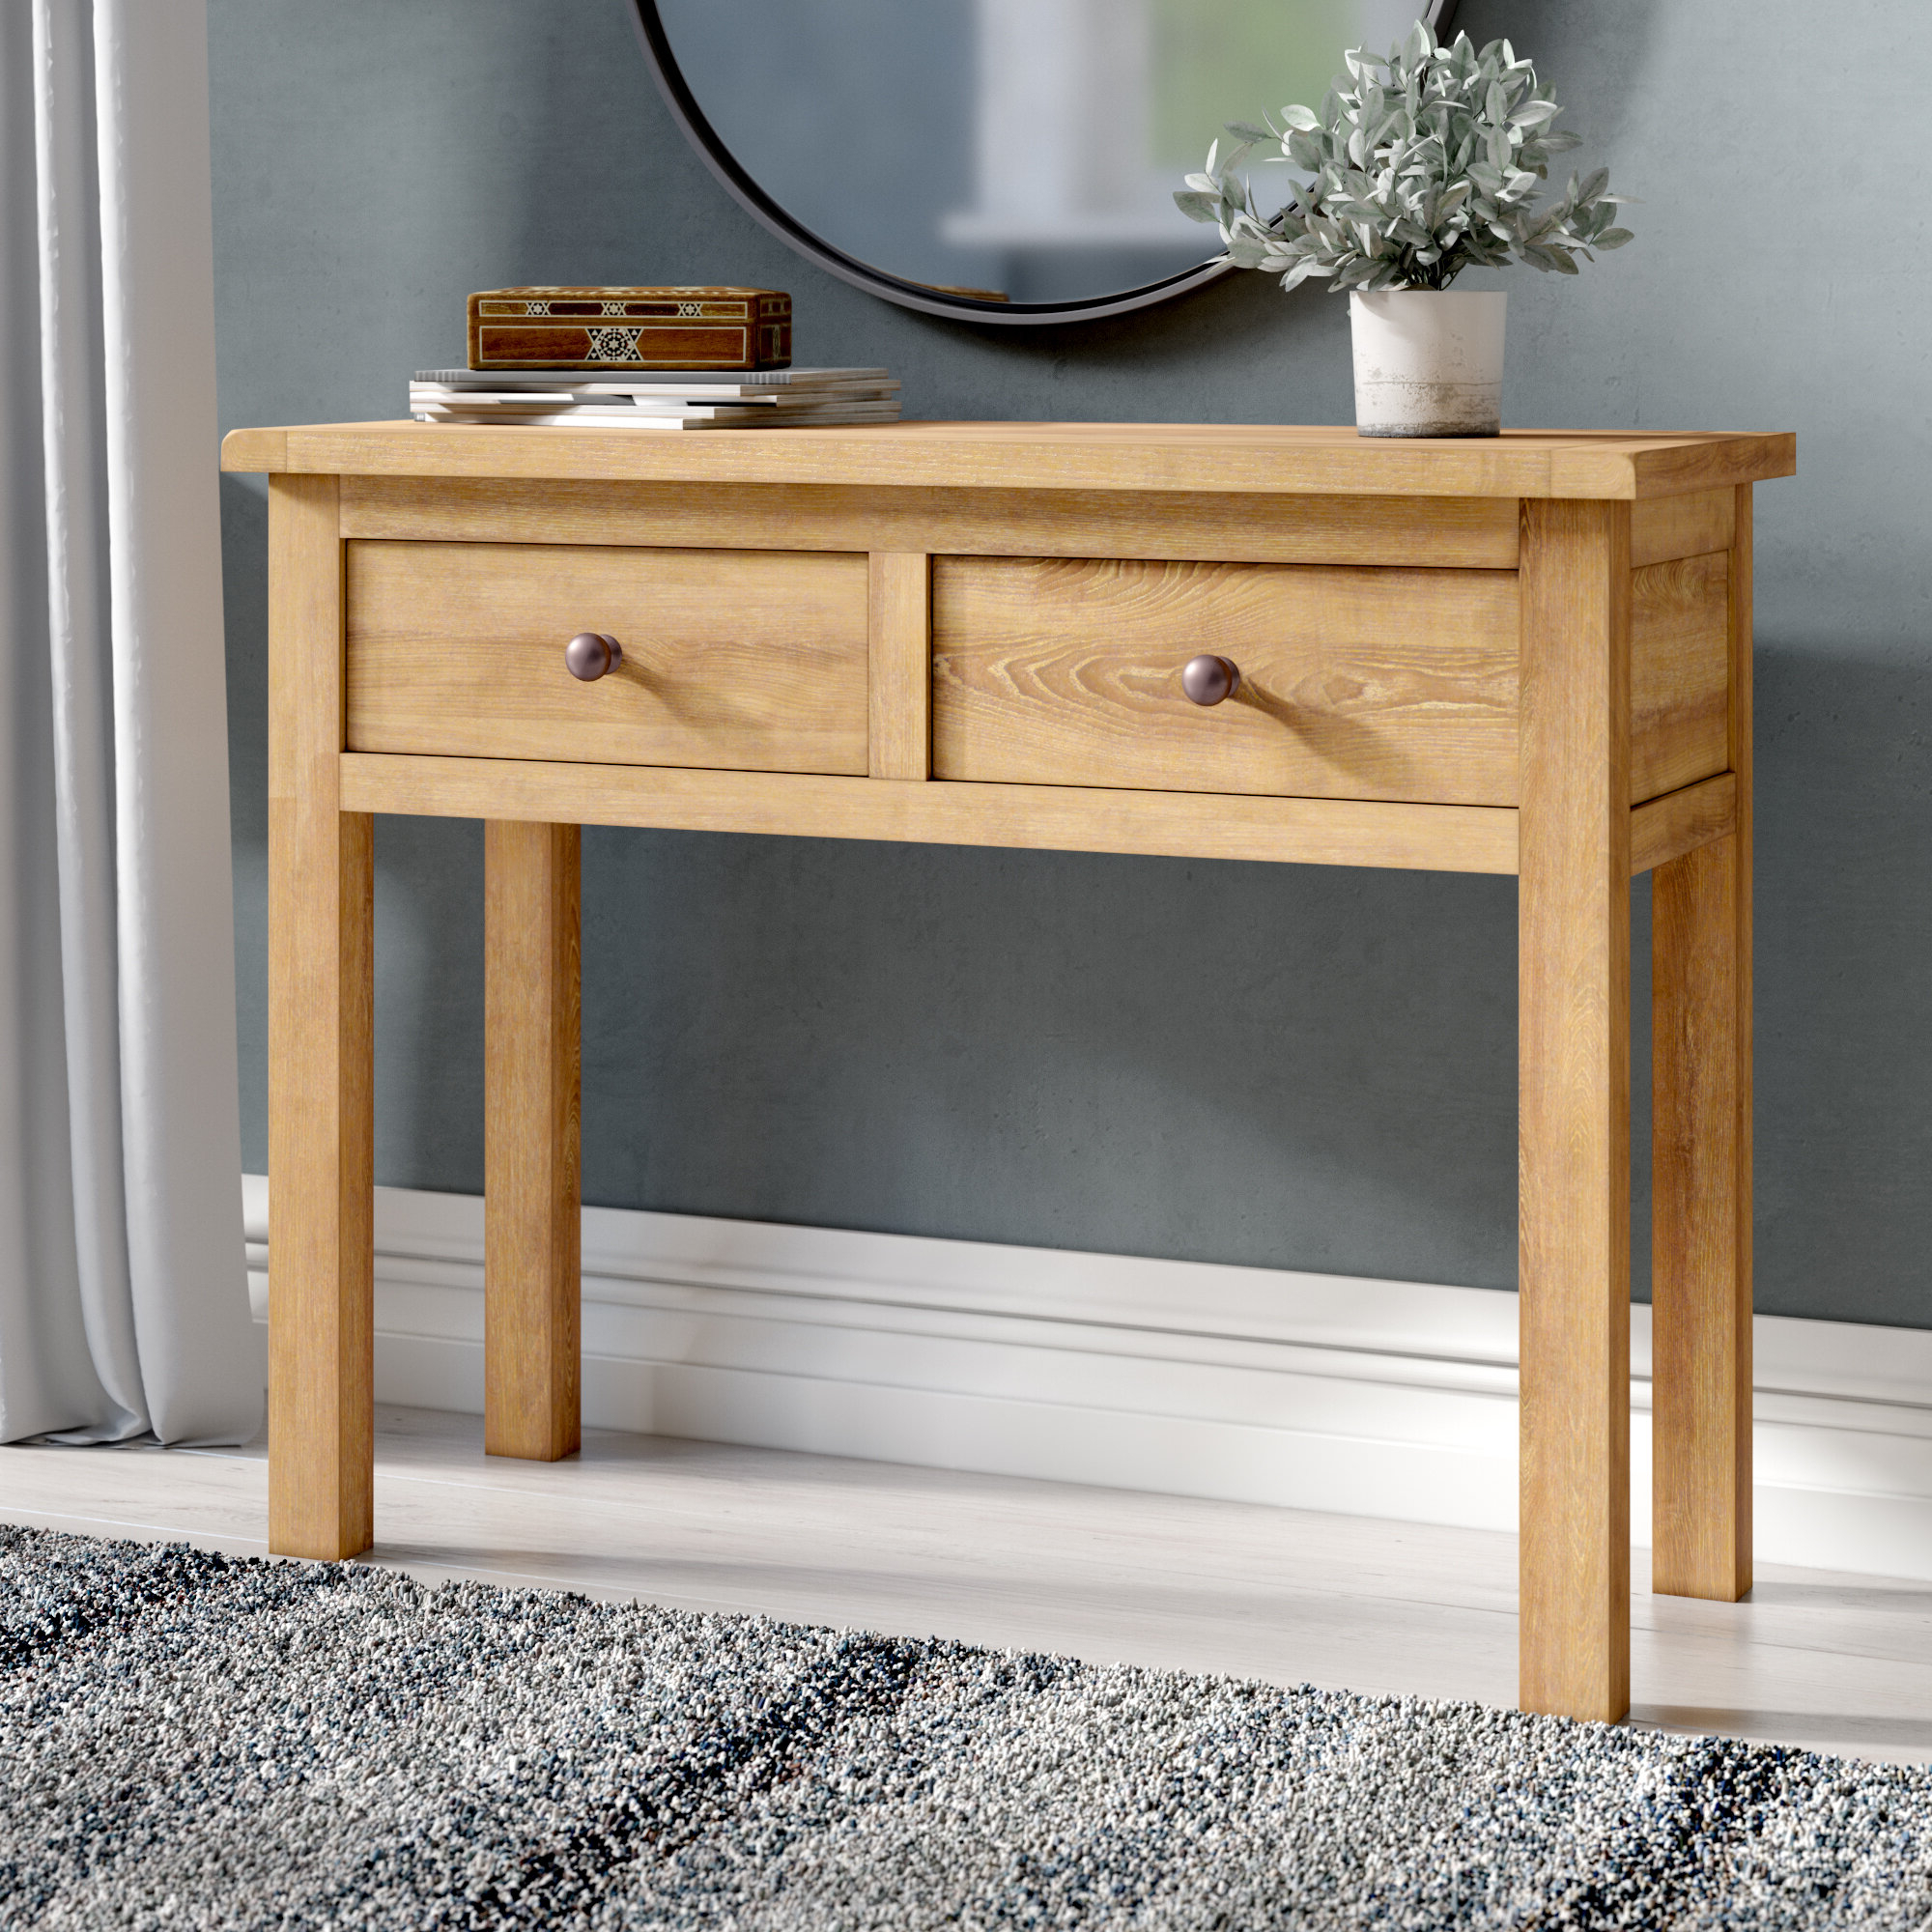 Wayfair.co.uk In Most Recent Oscar 60 Inch Console Tables (Gallery 5 of 20)